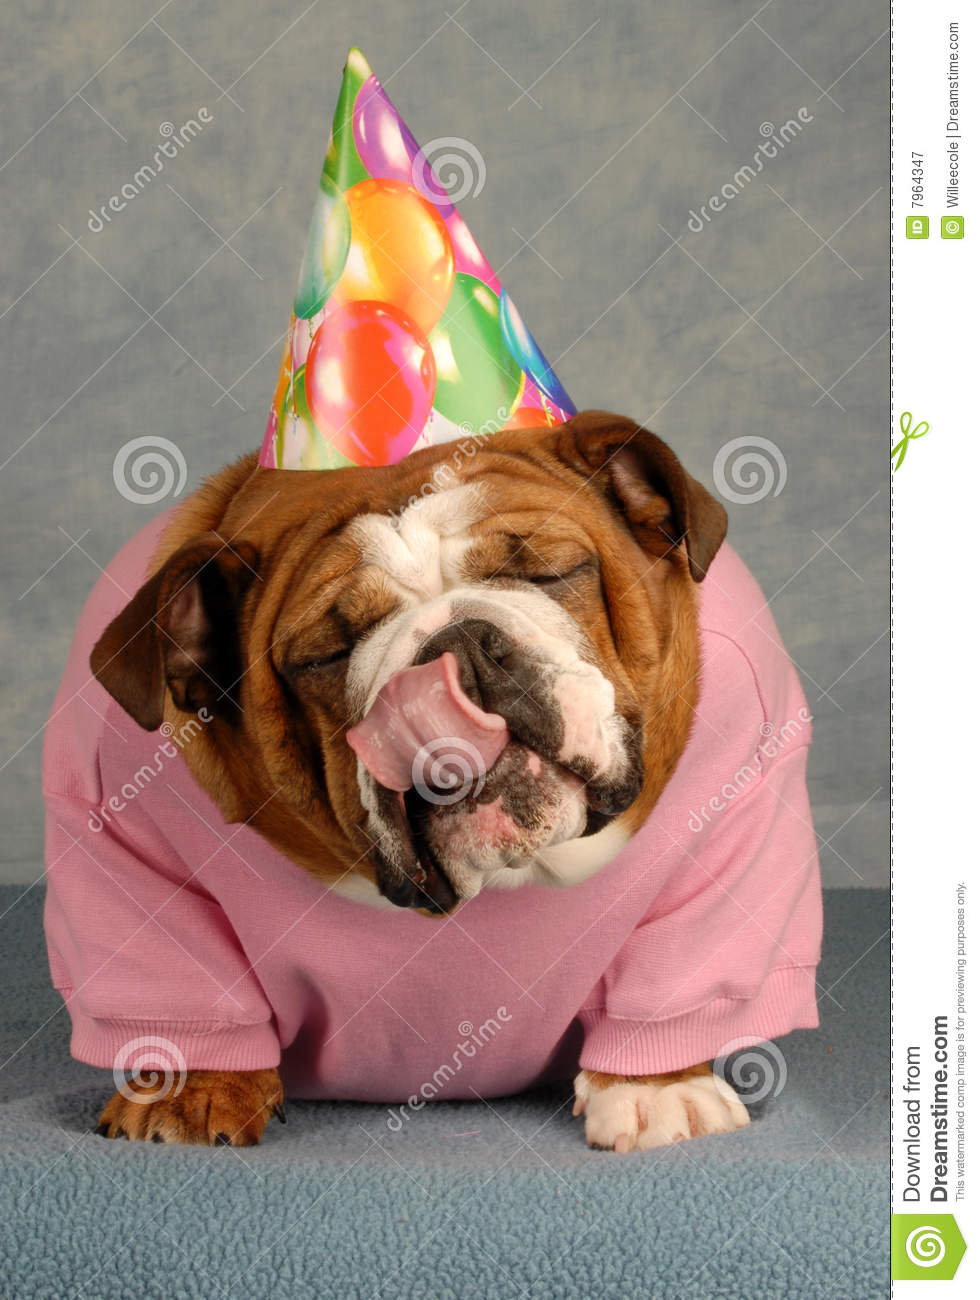 happy birthday dog images free ; happy-birthday-dog-7964347